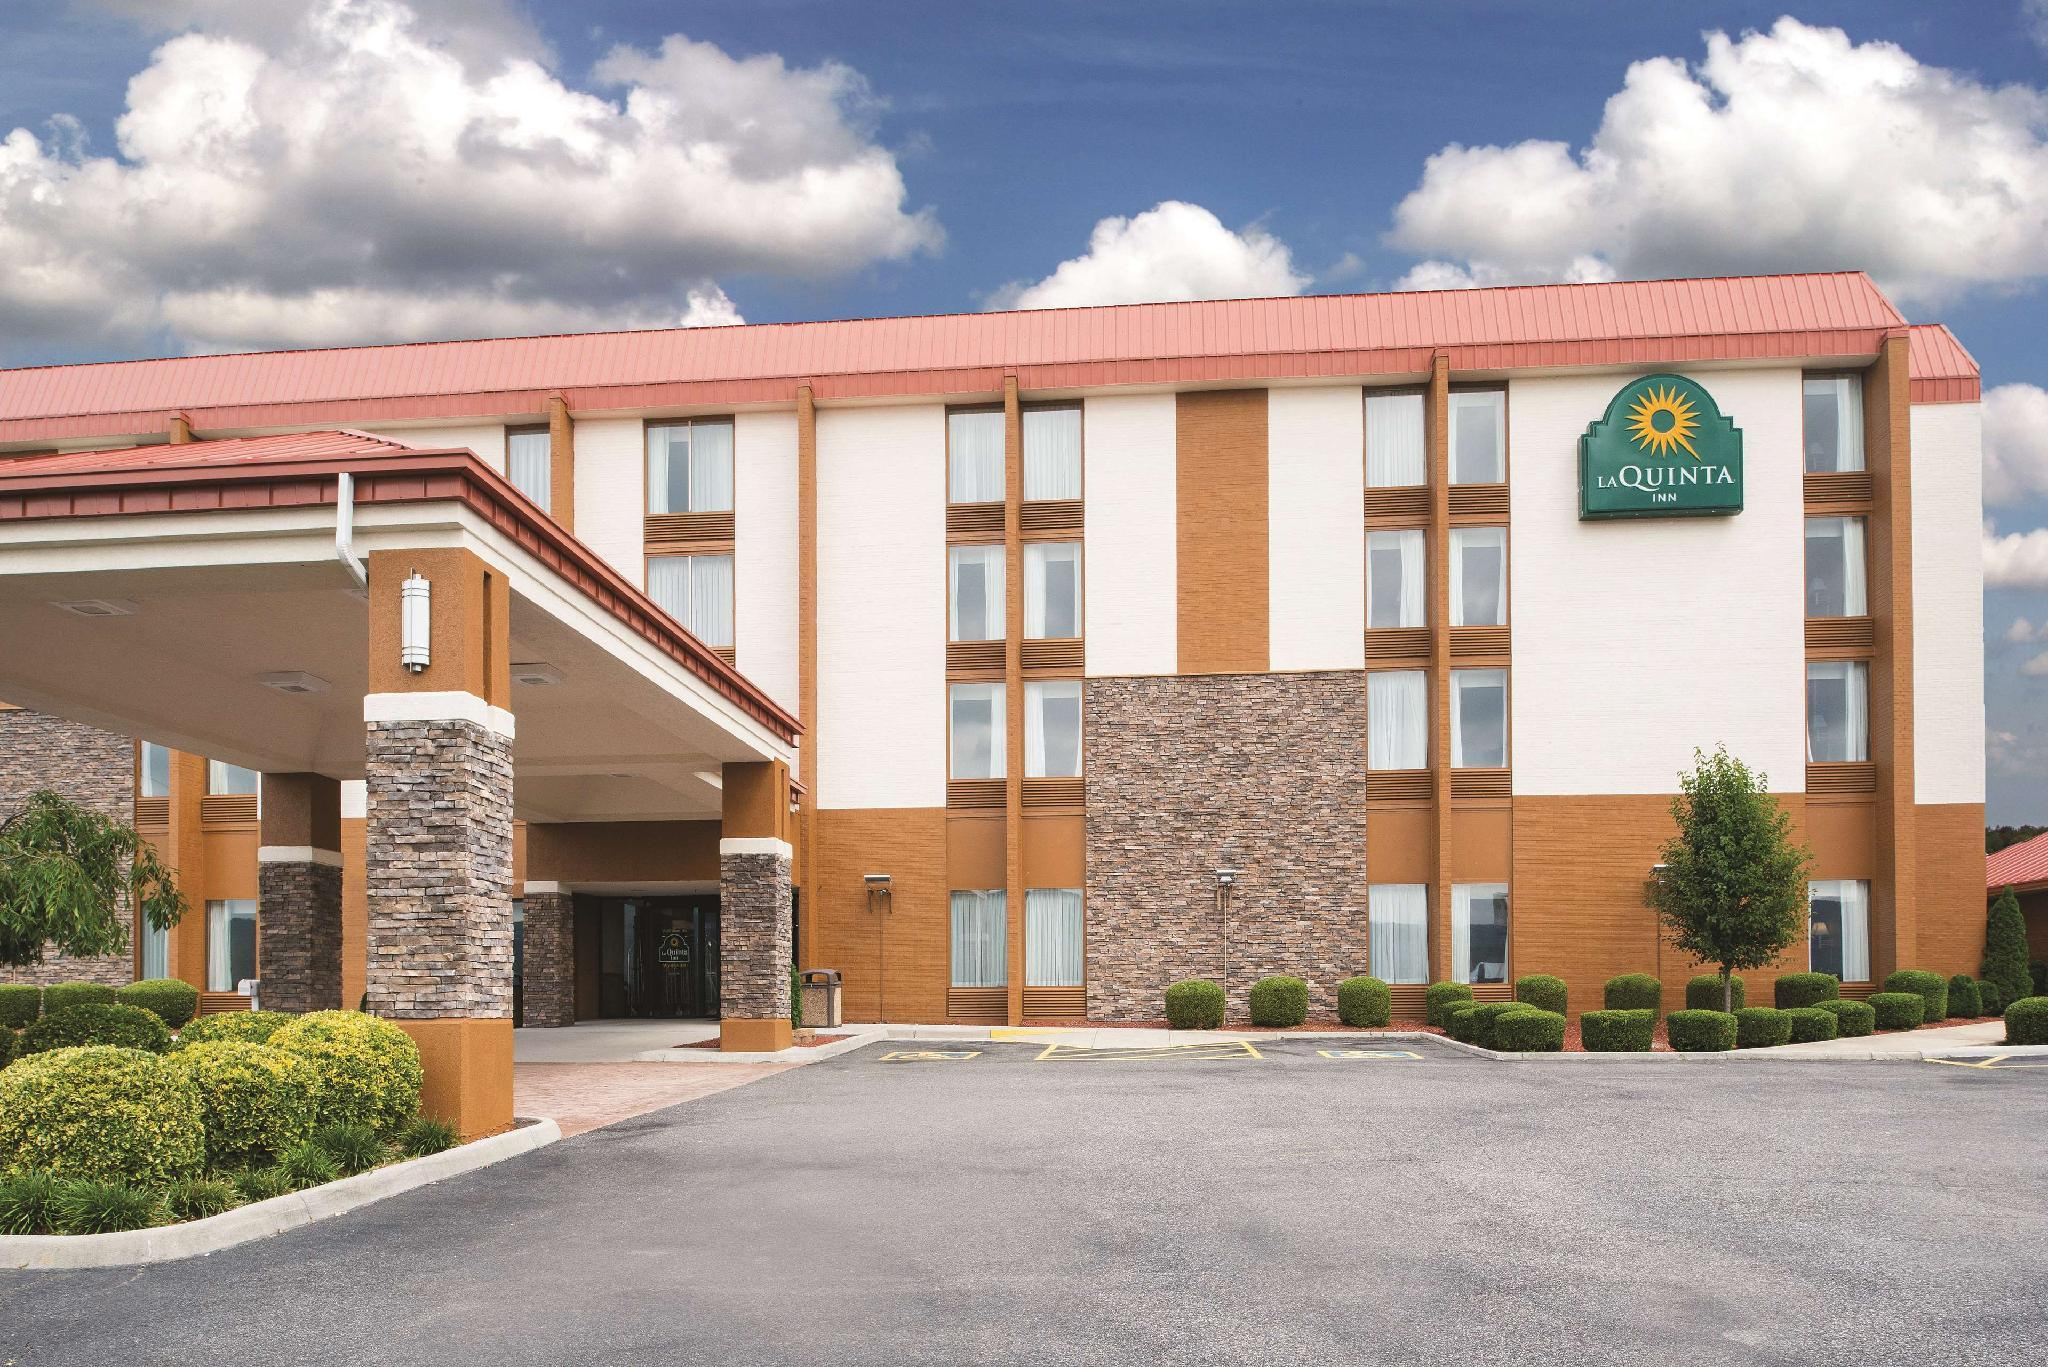 La Quinta Inn And Suites By Wyndham Wytheville